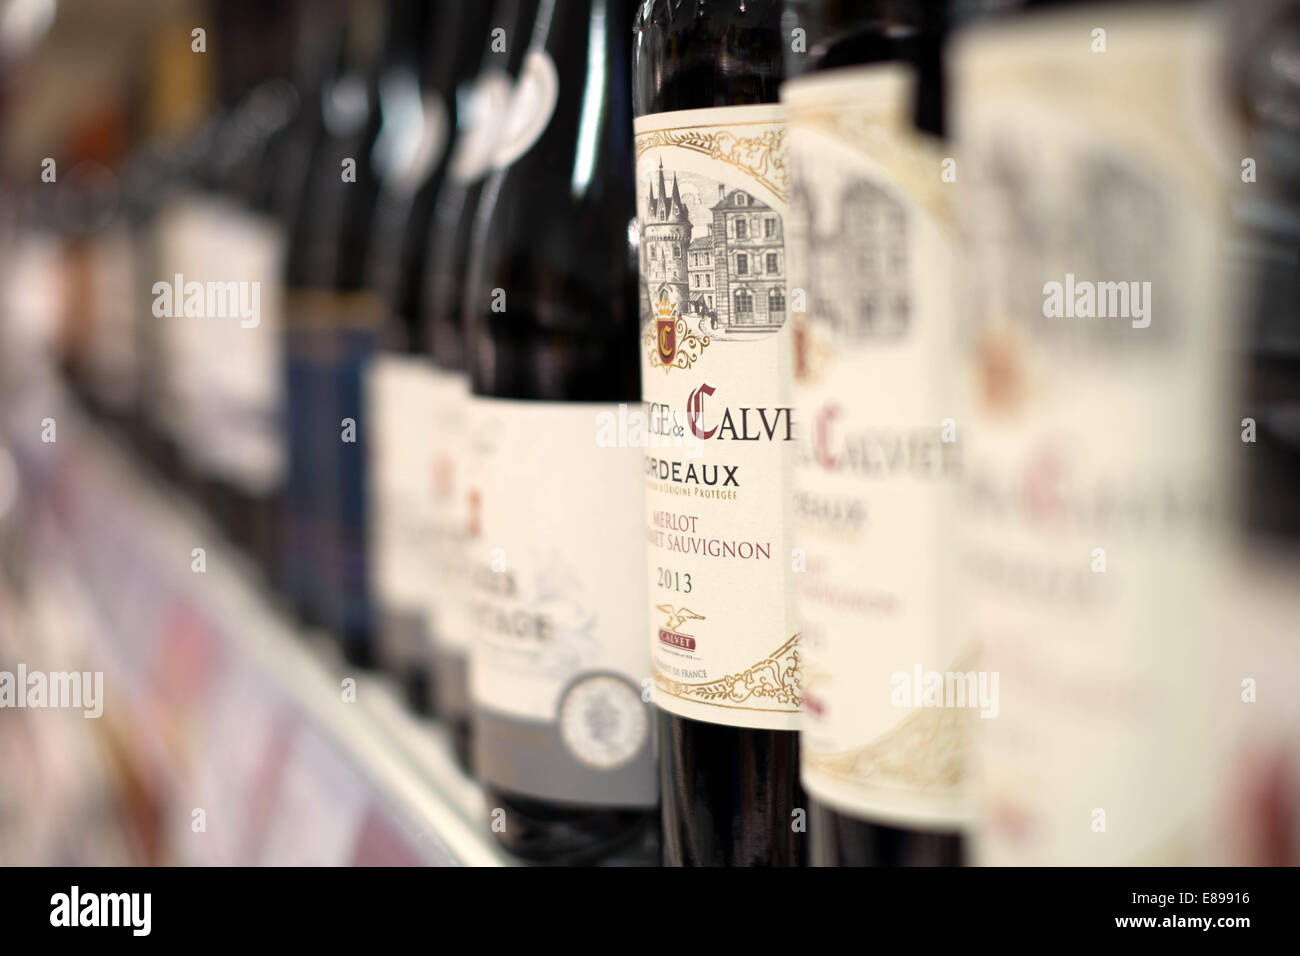 A selection of red wine bottles on a shelf in a branch of Sainsbury's supermarket showing prices & offers - Stock Image